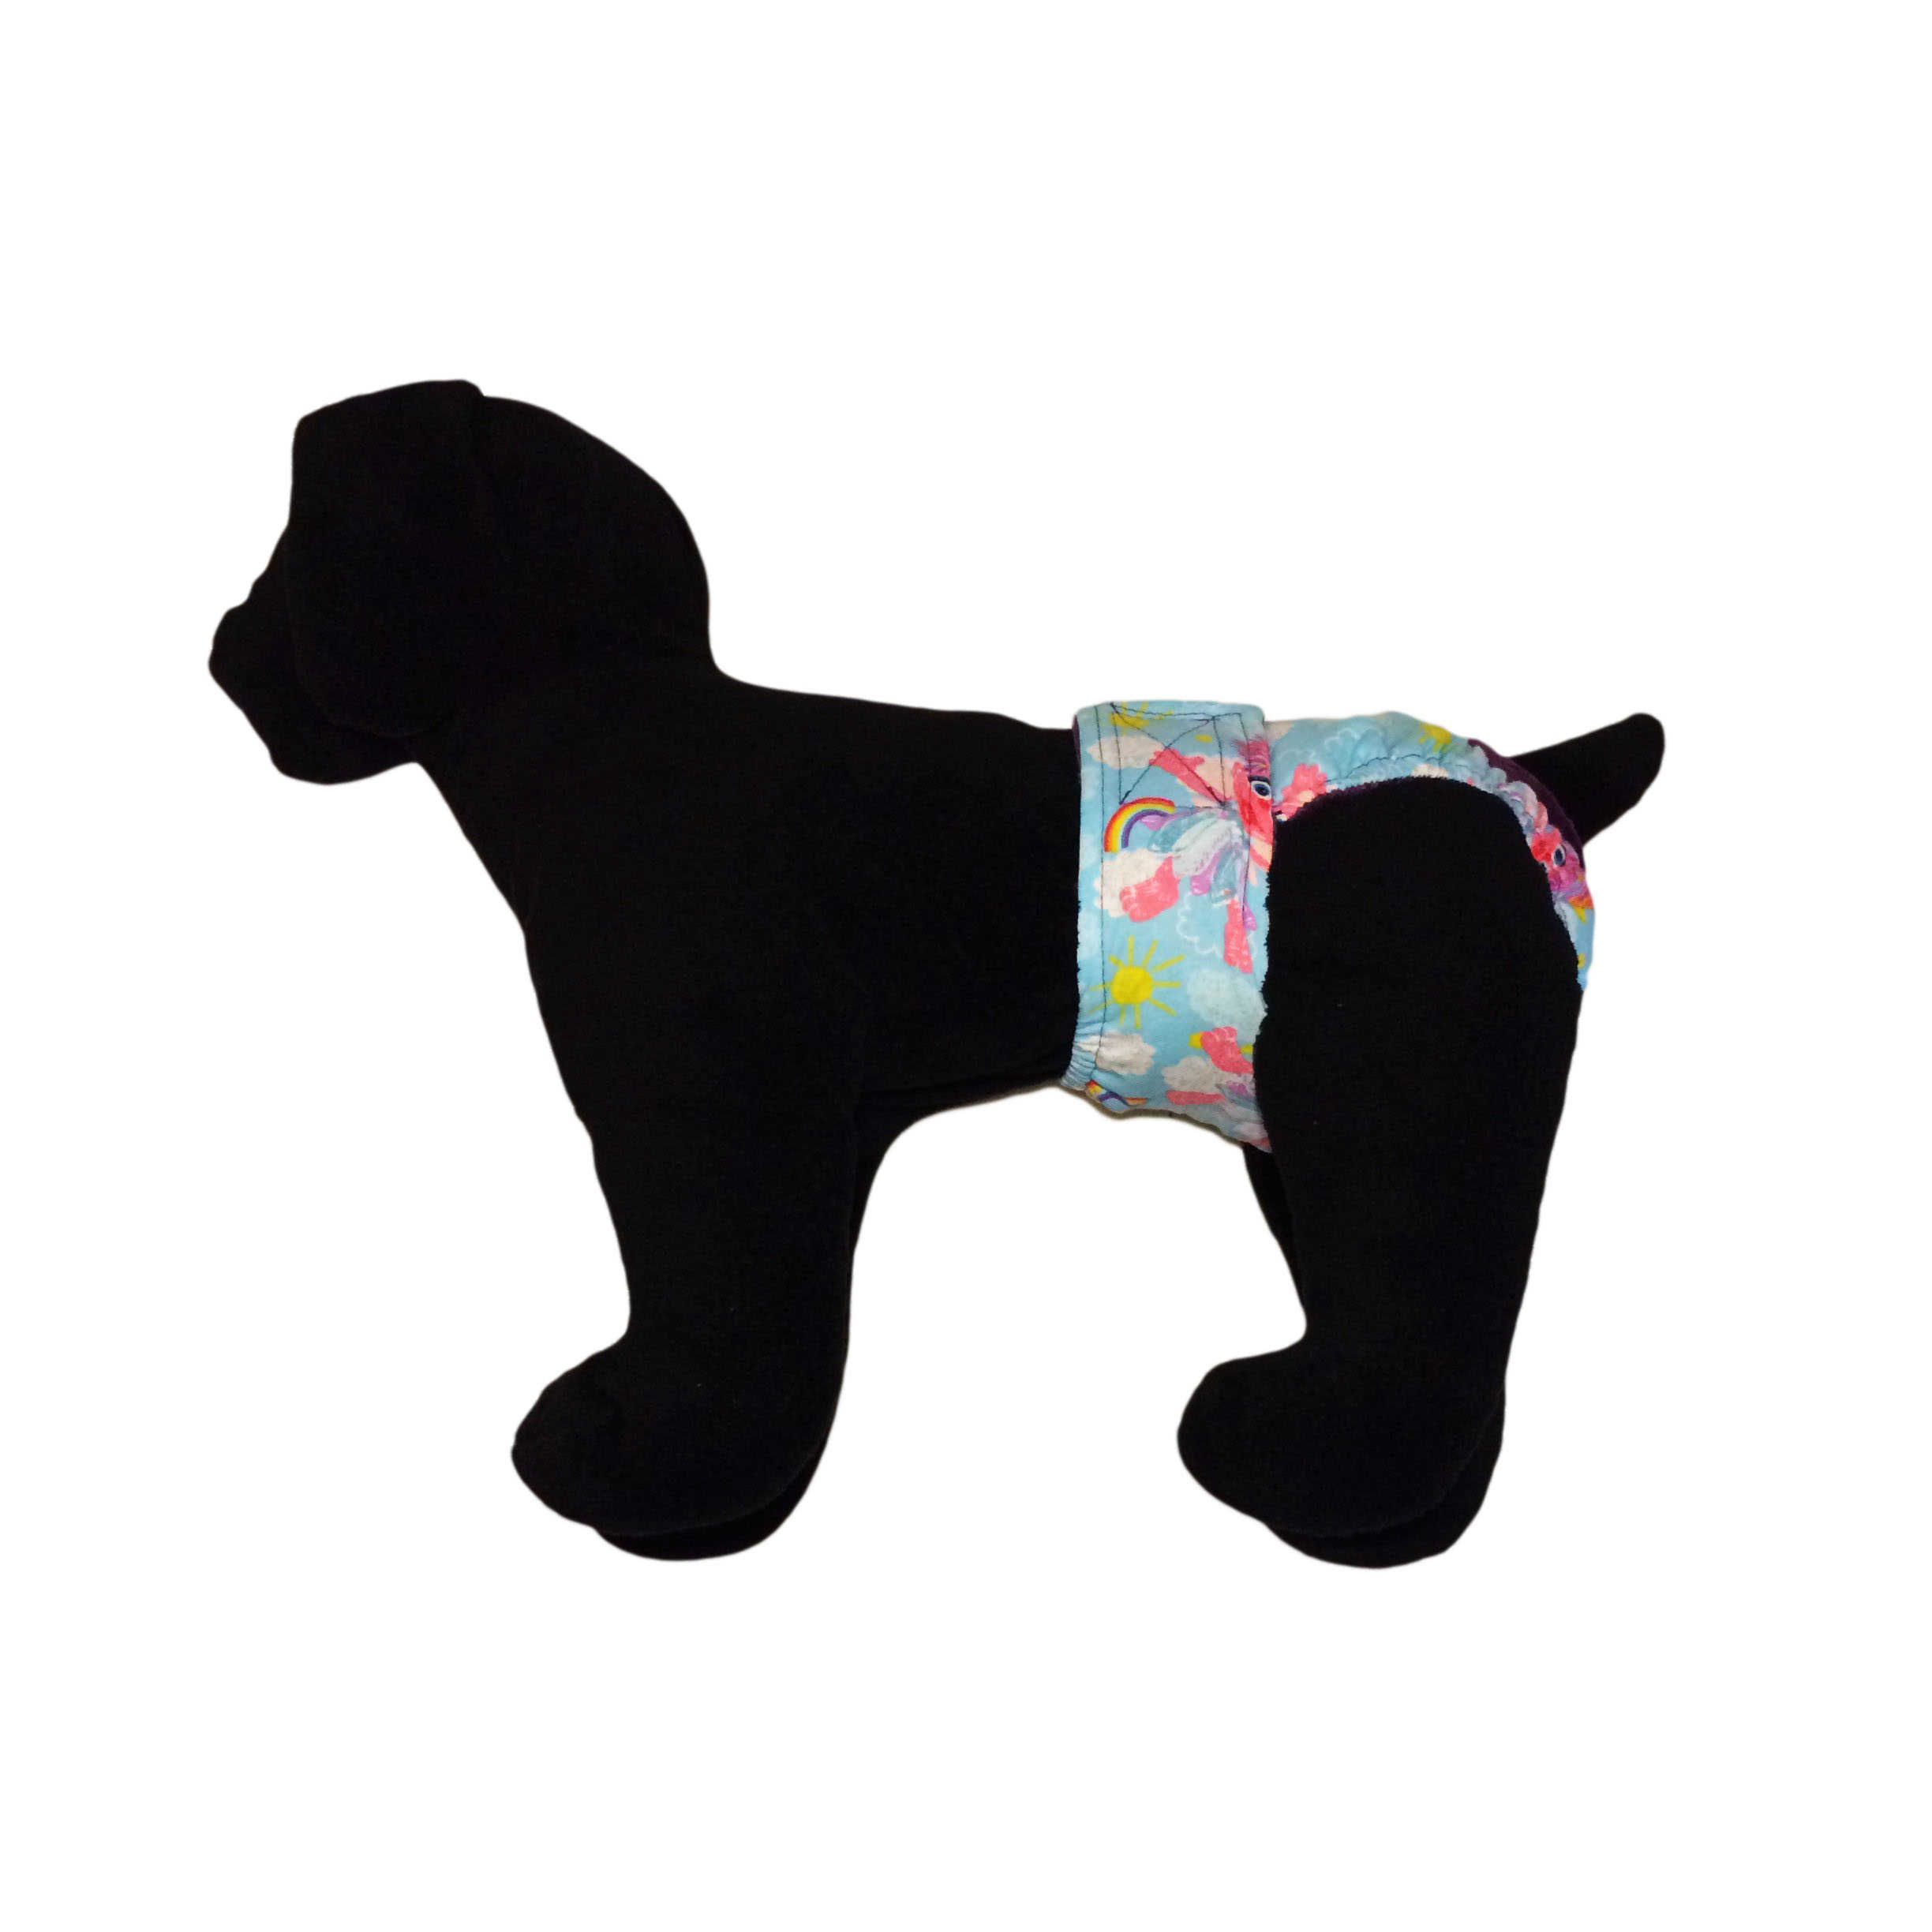 2448x2448 Barkertime Dog Washable Dog Diaper Made From Abby Cadabby Fabric